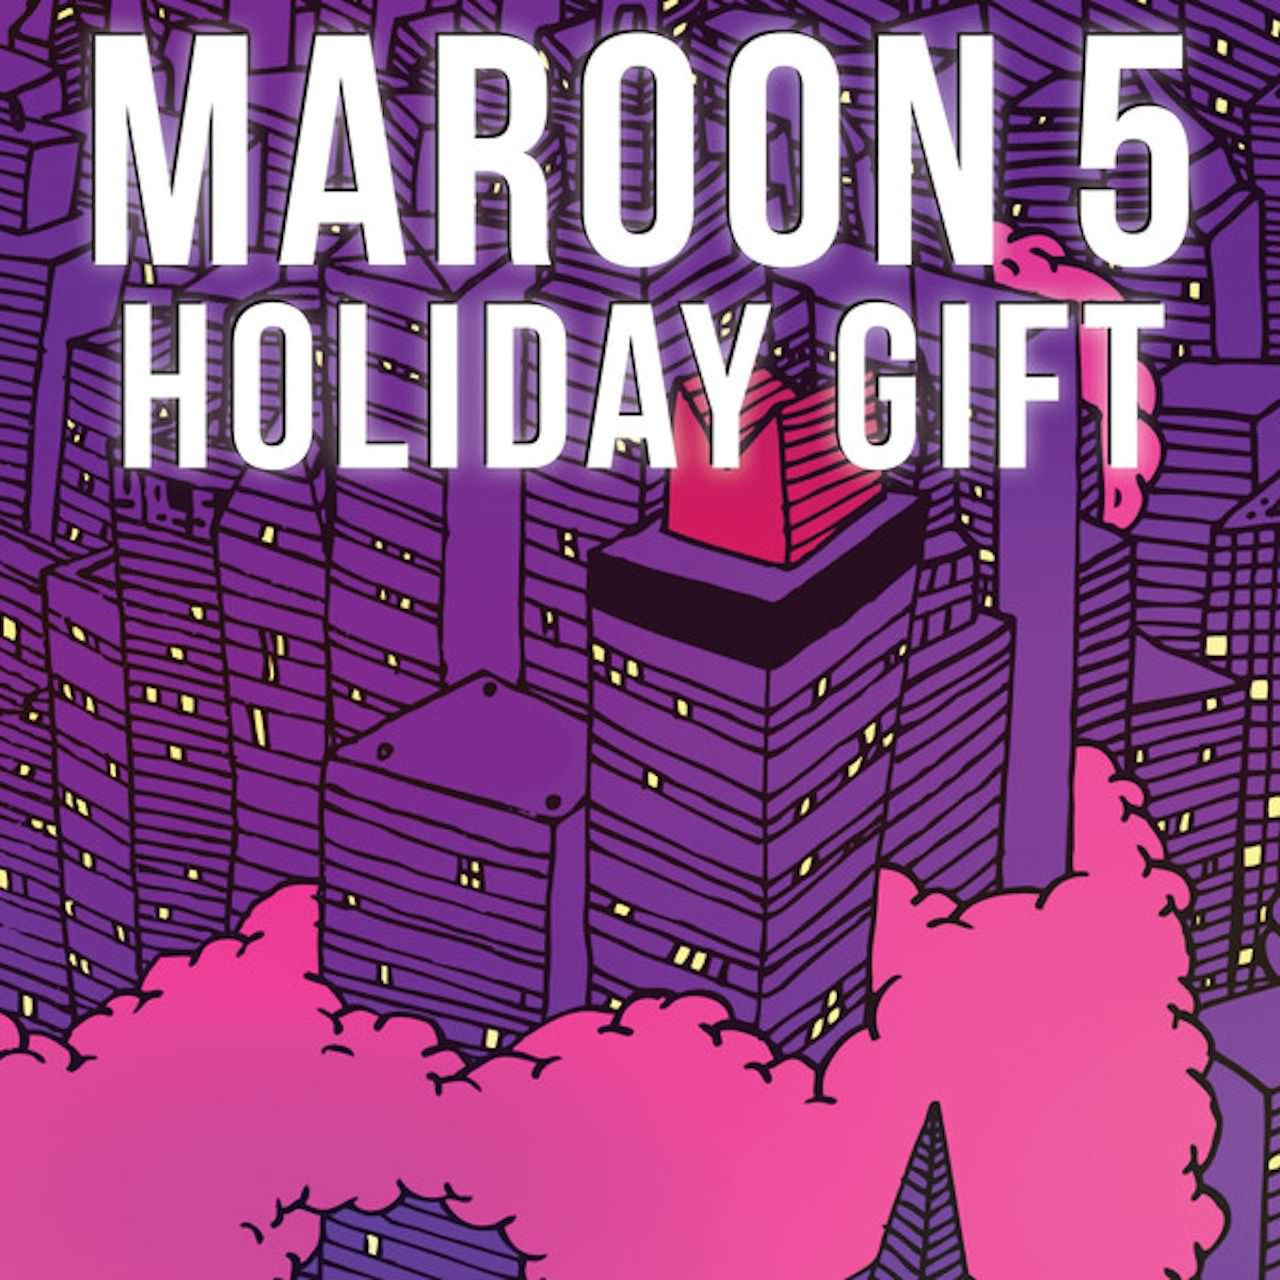 [活動已結束] iTunes 聖誕禮物:Maroon 5 – Moves Like Jagger 免費下載